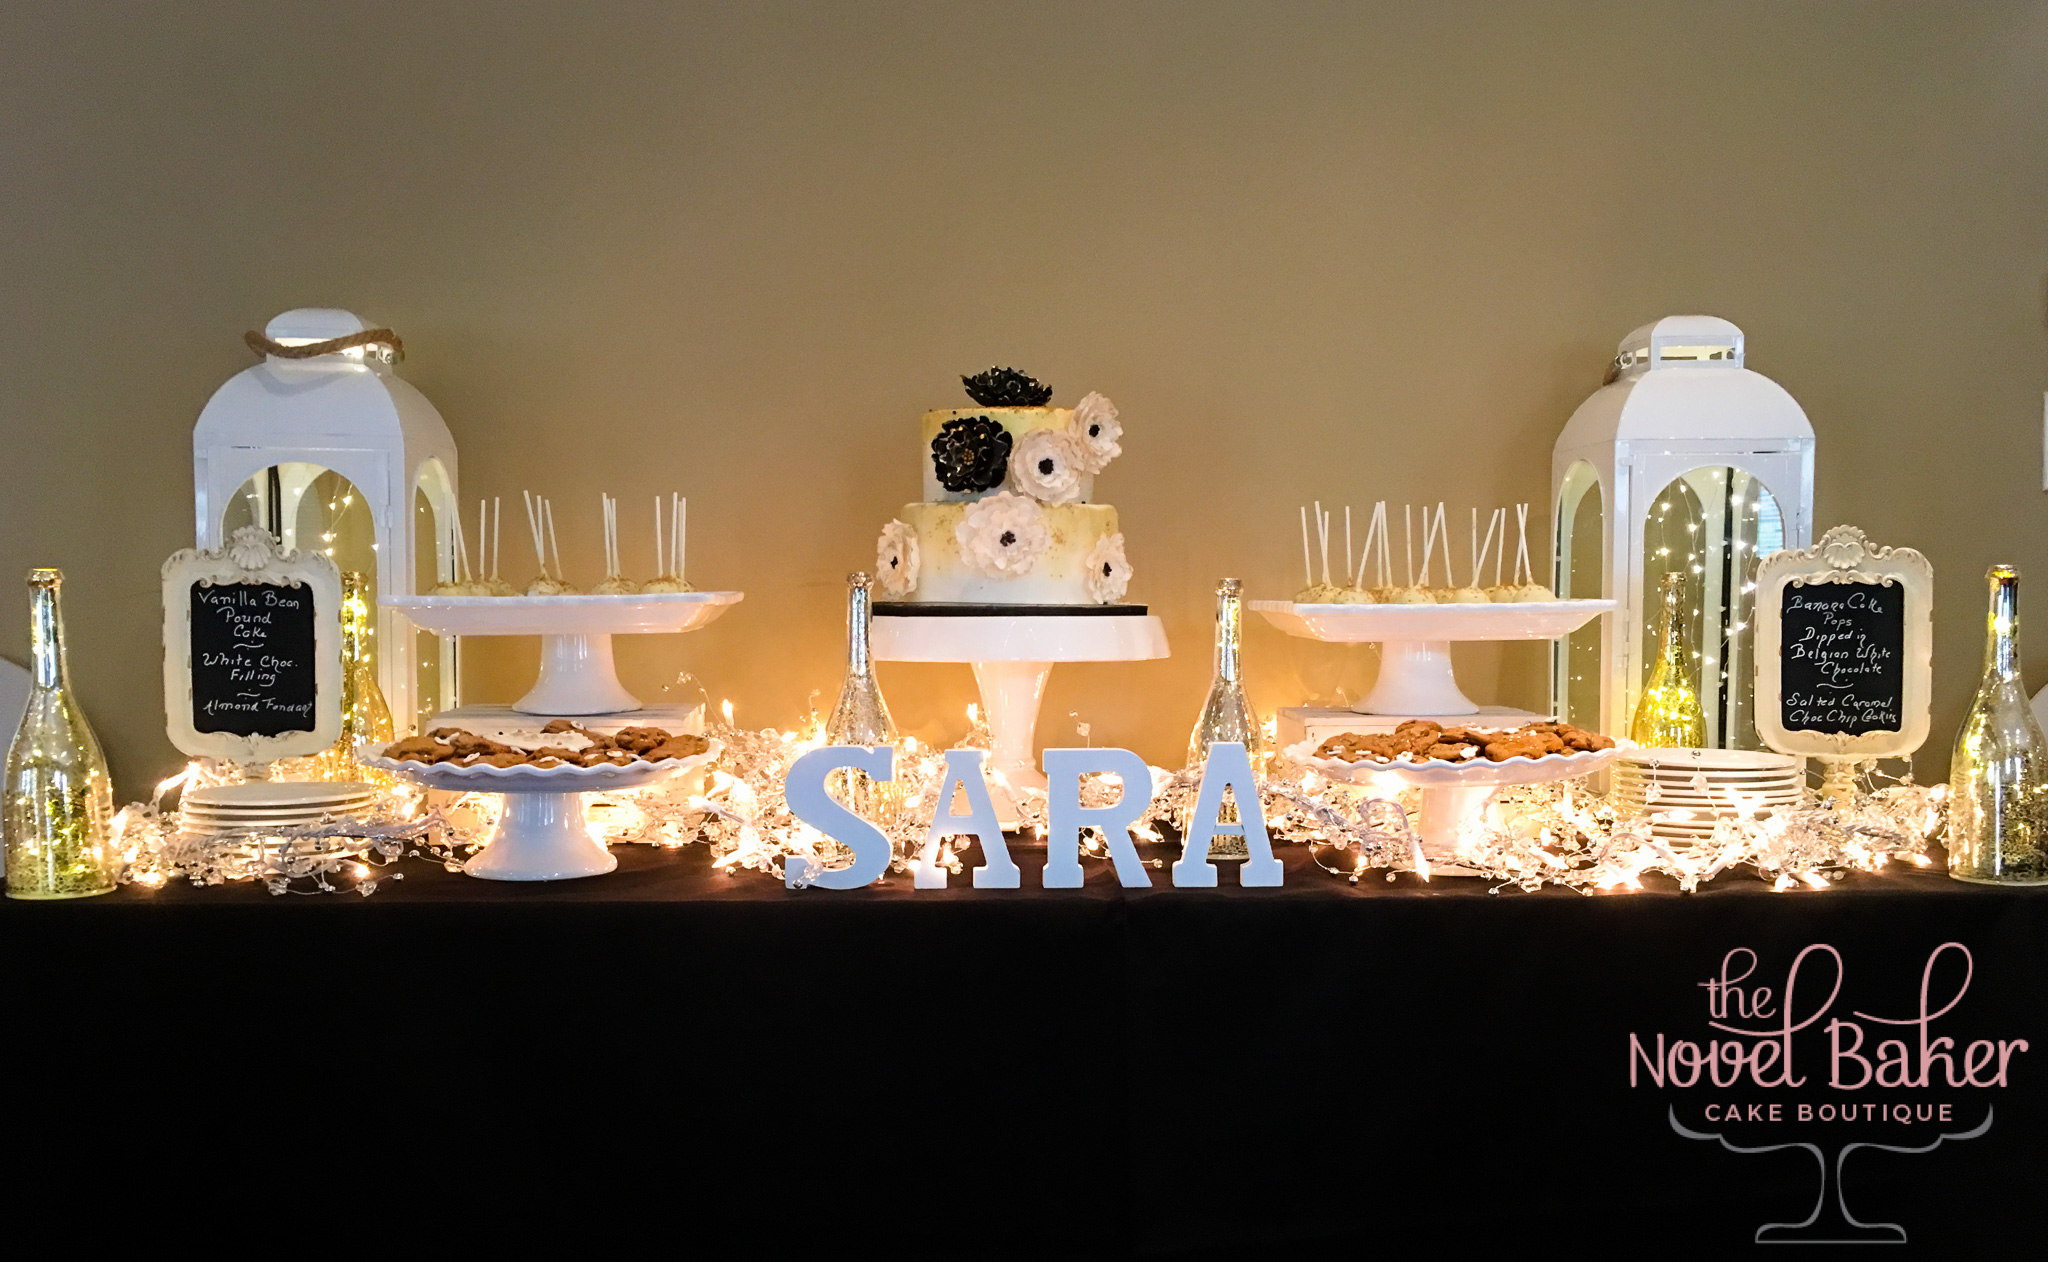 BlackWhiteGold Sweet Table 60th Birthday Party 2 Tier Cake, White & Gold Cake Pops